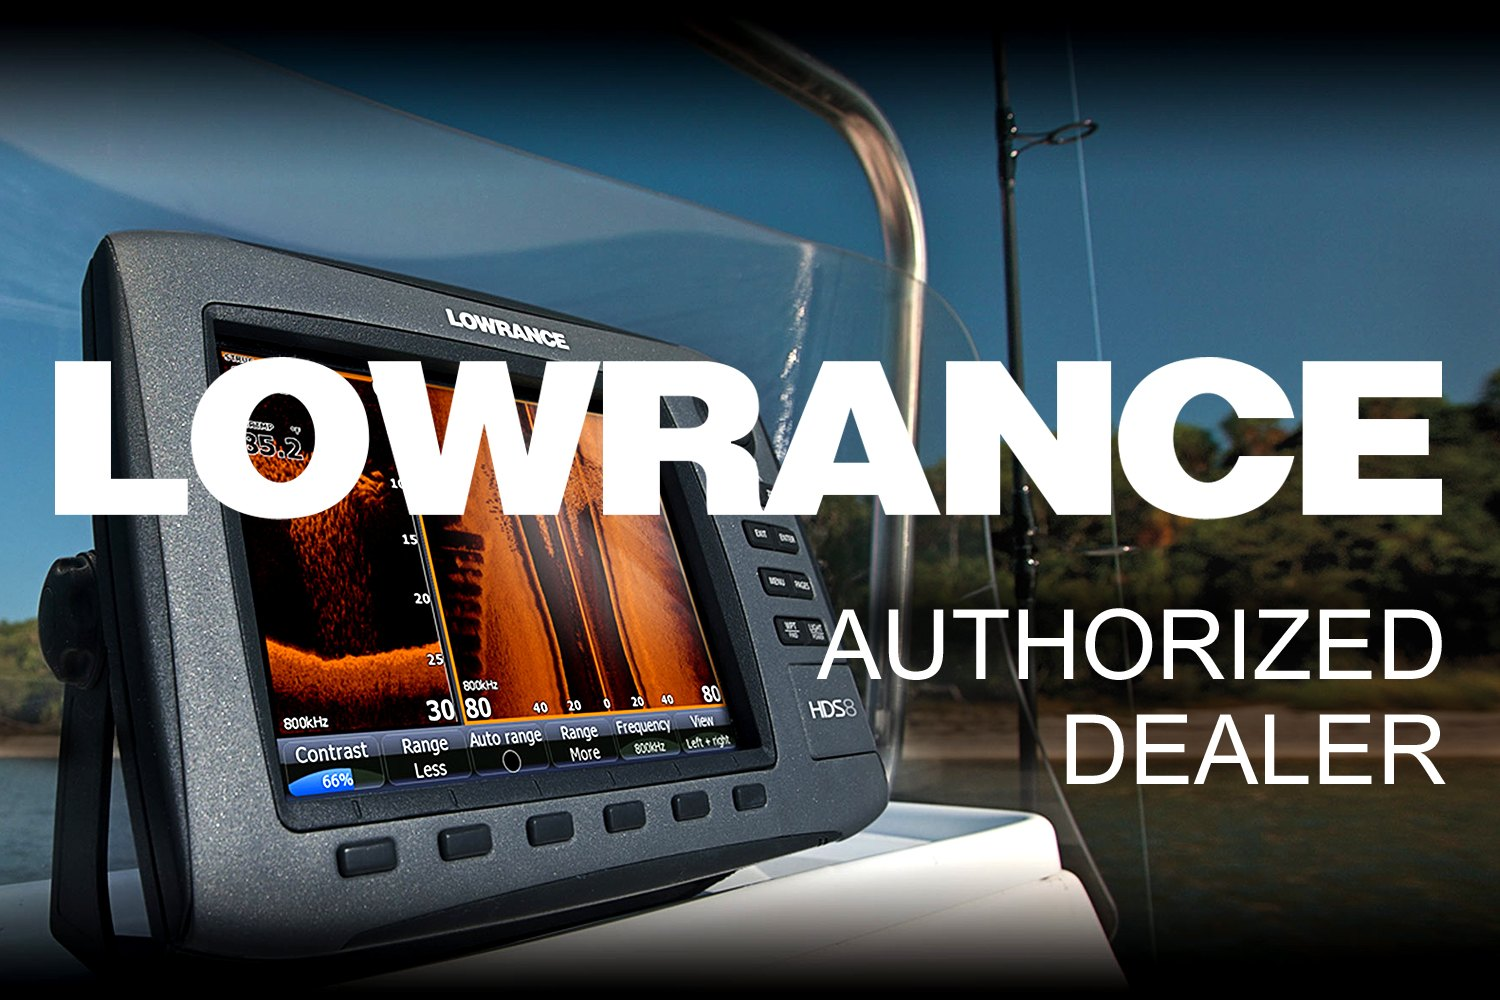 Lowrance® 000-14561-001 - Airmar xSonic B285M Bronze External Thru-hull  Mount Transducer with 30' Cable